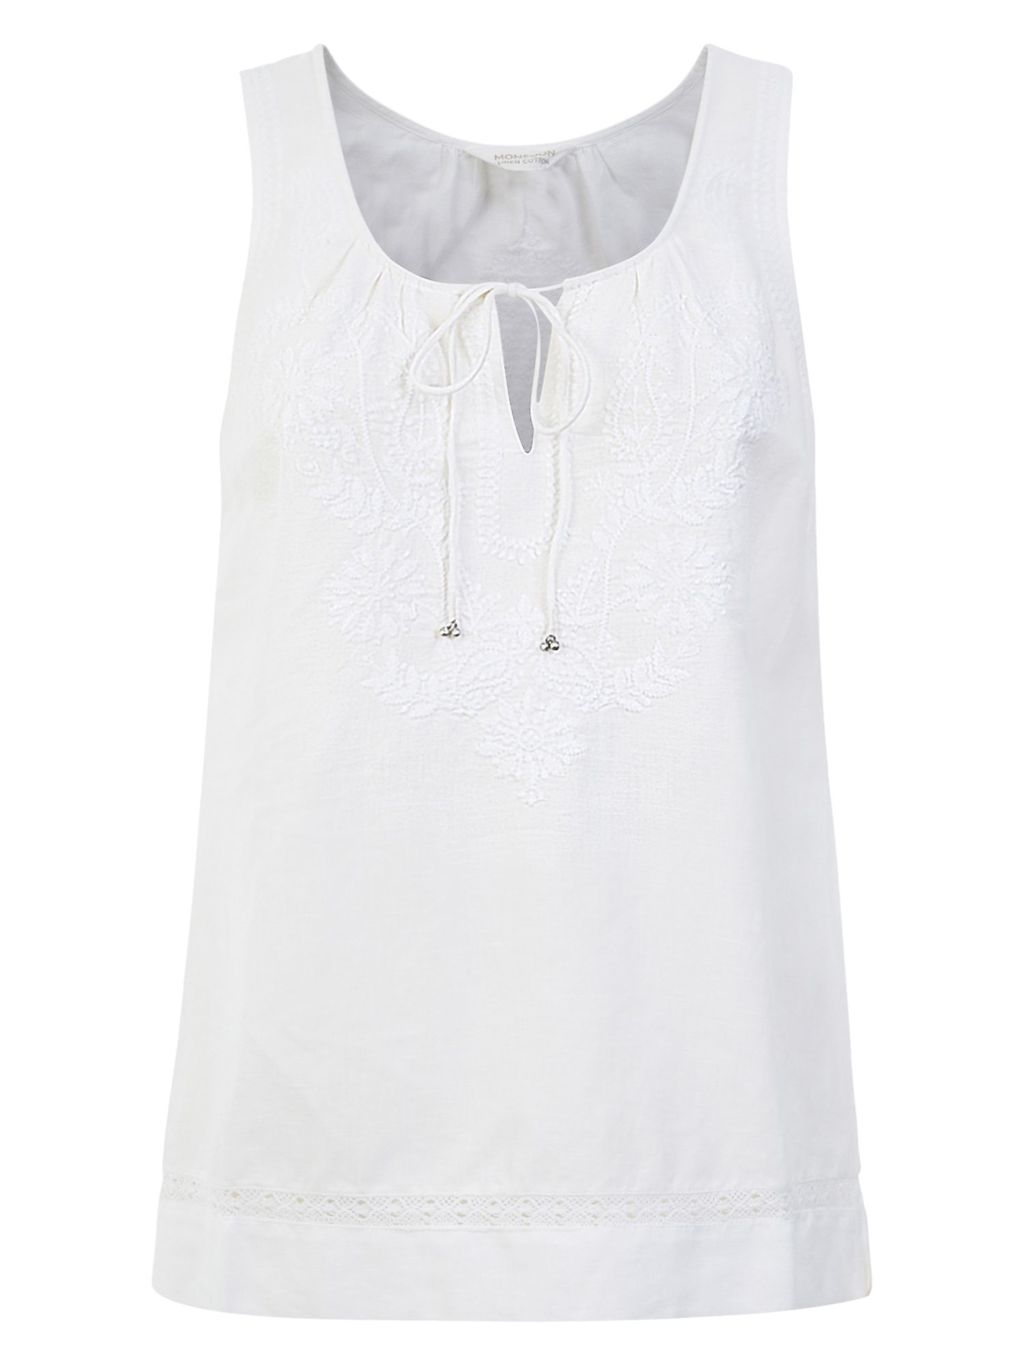 Sydney Sleeveless Embroidered Top, White - pattern: plain; sleeve style: sleeveless; style: vest top; predominant colour: white; occasions: casual; length: standard; neckline: peep hole neckline; fibres: linen - mix; fit: body skimming; sleeve length: sleeveless; pattern type: fabric; texture group: jersey - stretchy/drapey; embellishment: embroidered; season: s/s 2016; wardrobe: highlight